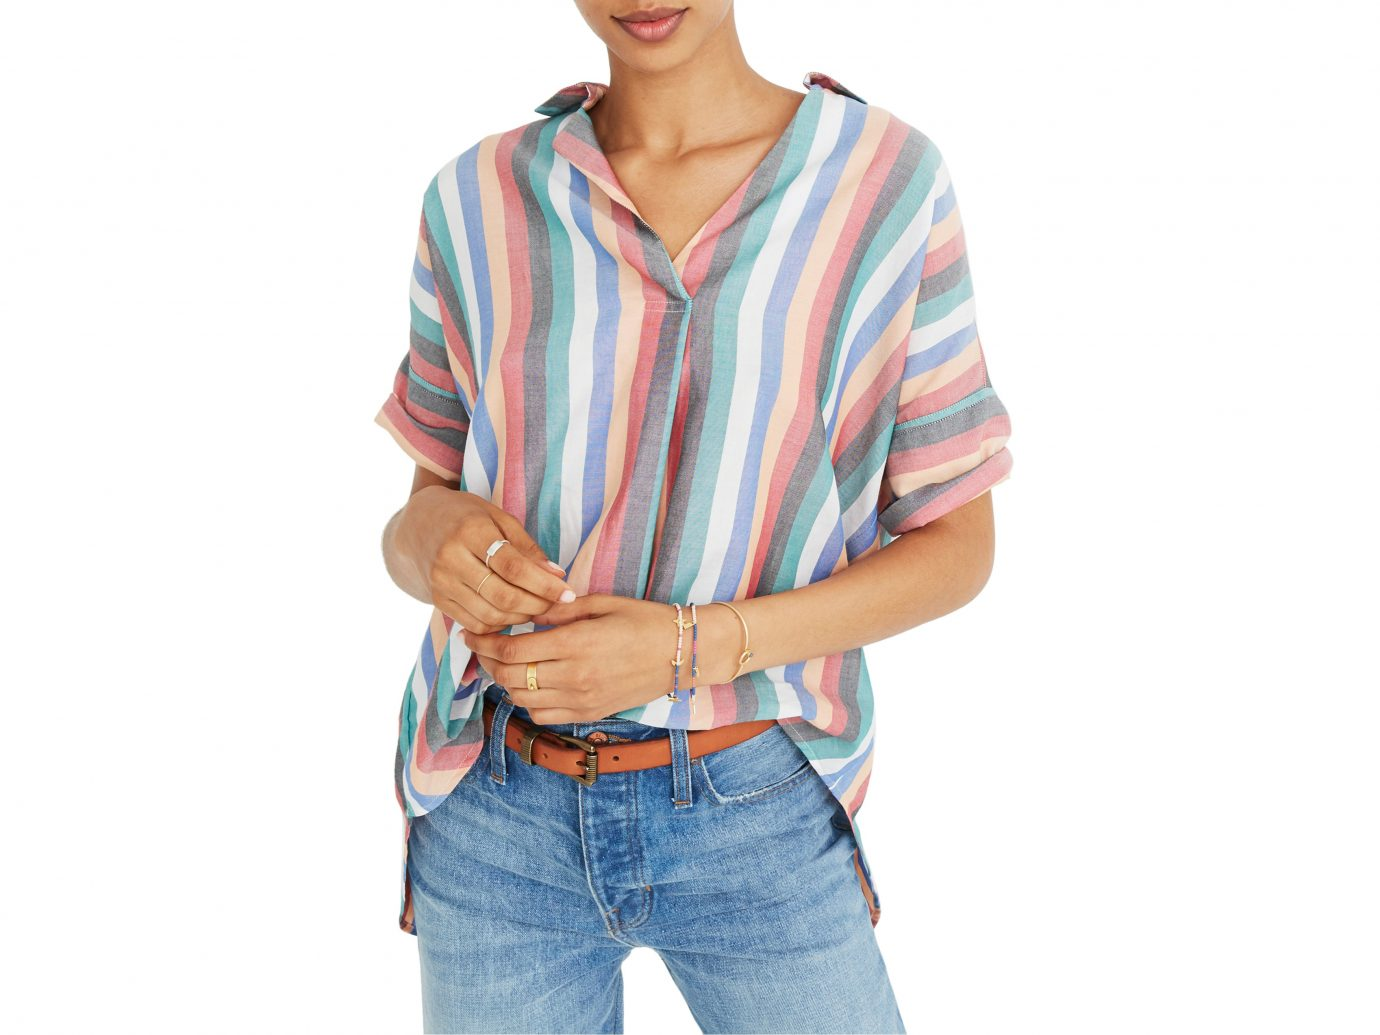 Madewell Courier Button Back Shirt in Multi Stripe